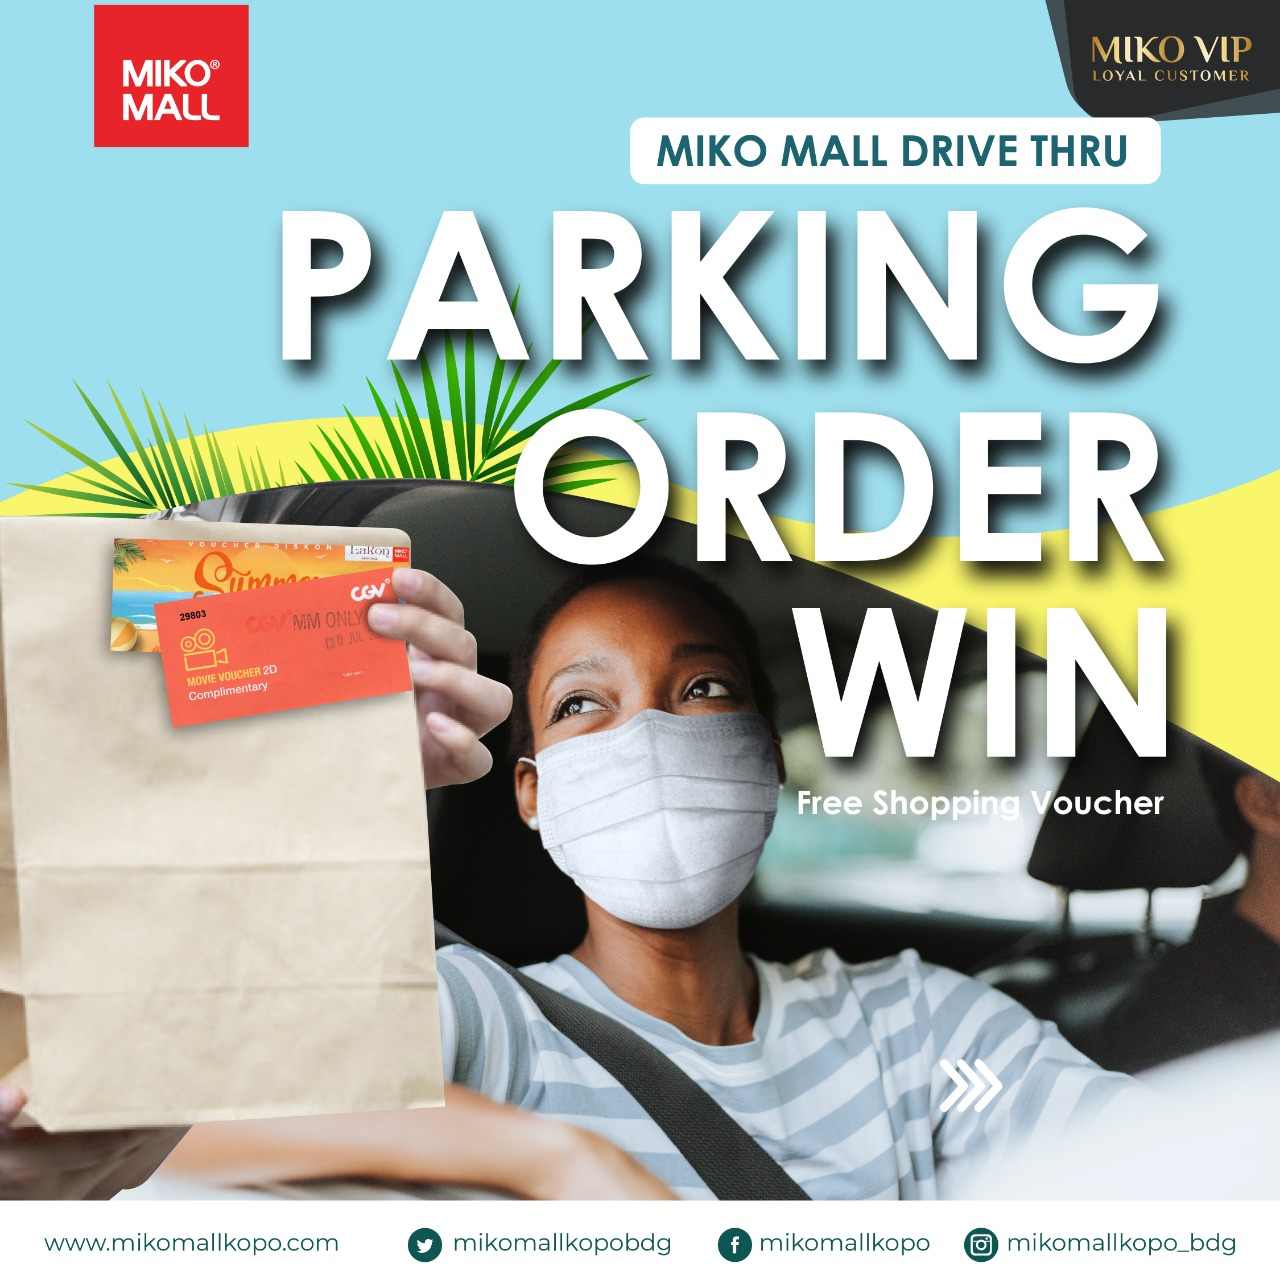 PARKING, ORDER AND WIN